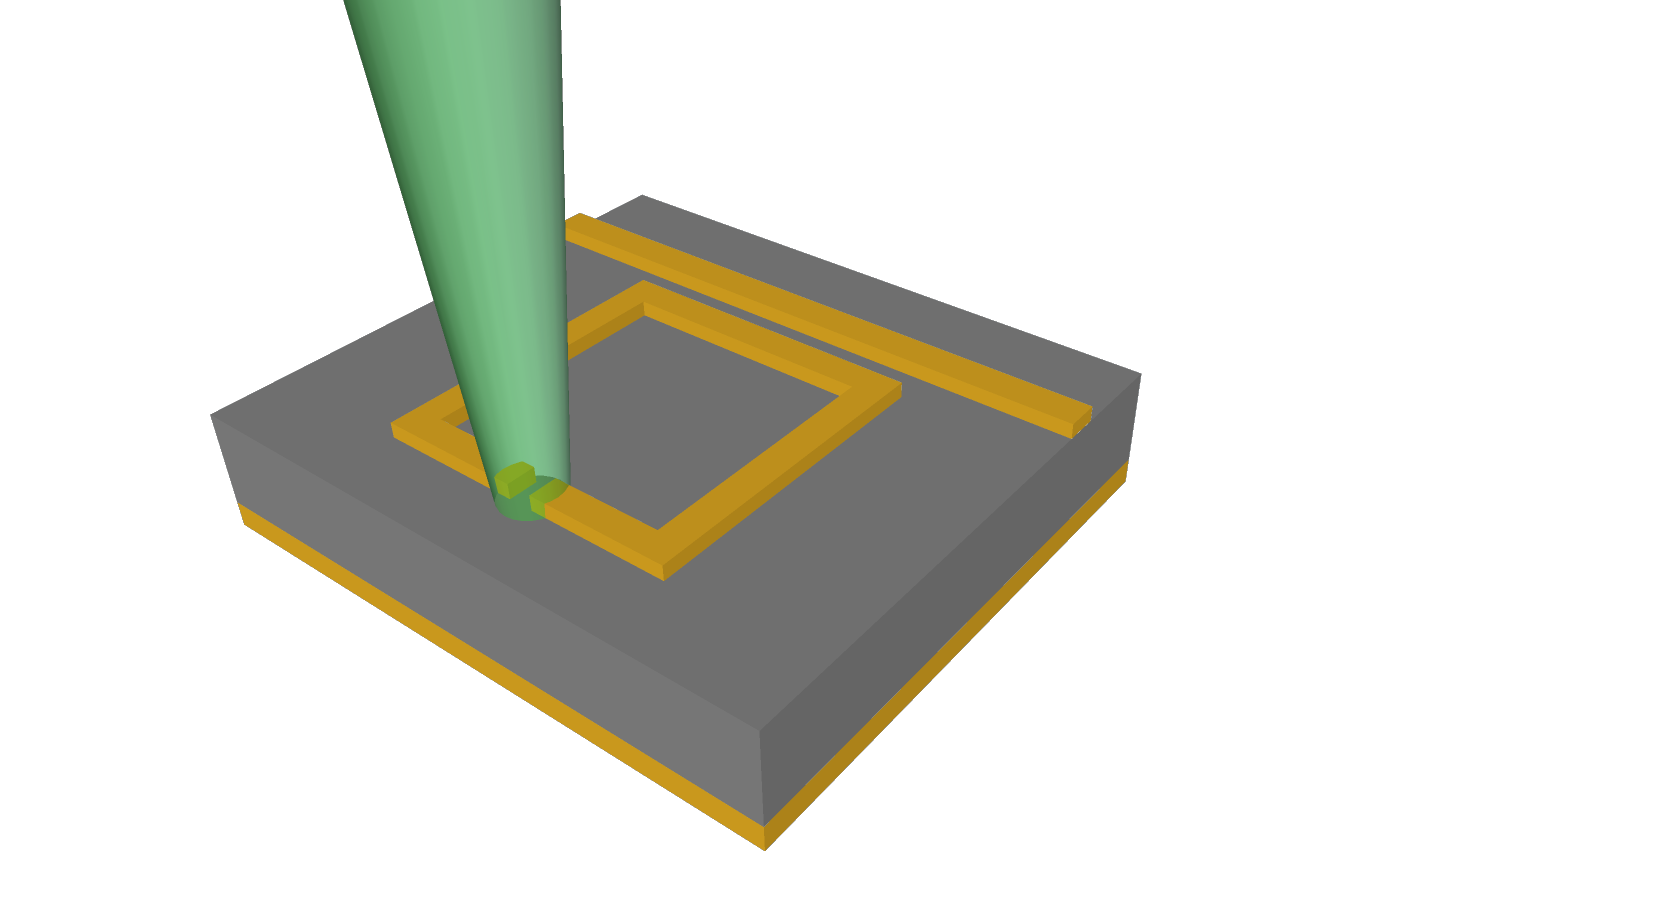 Research Dan Wasserman Infrared Emitter Detector Schematic Our Approach Offers A Path Towards Multiplexed Multiple Wavelength And High Speed Or Sensitivity Detection Of Incident Radiation